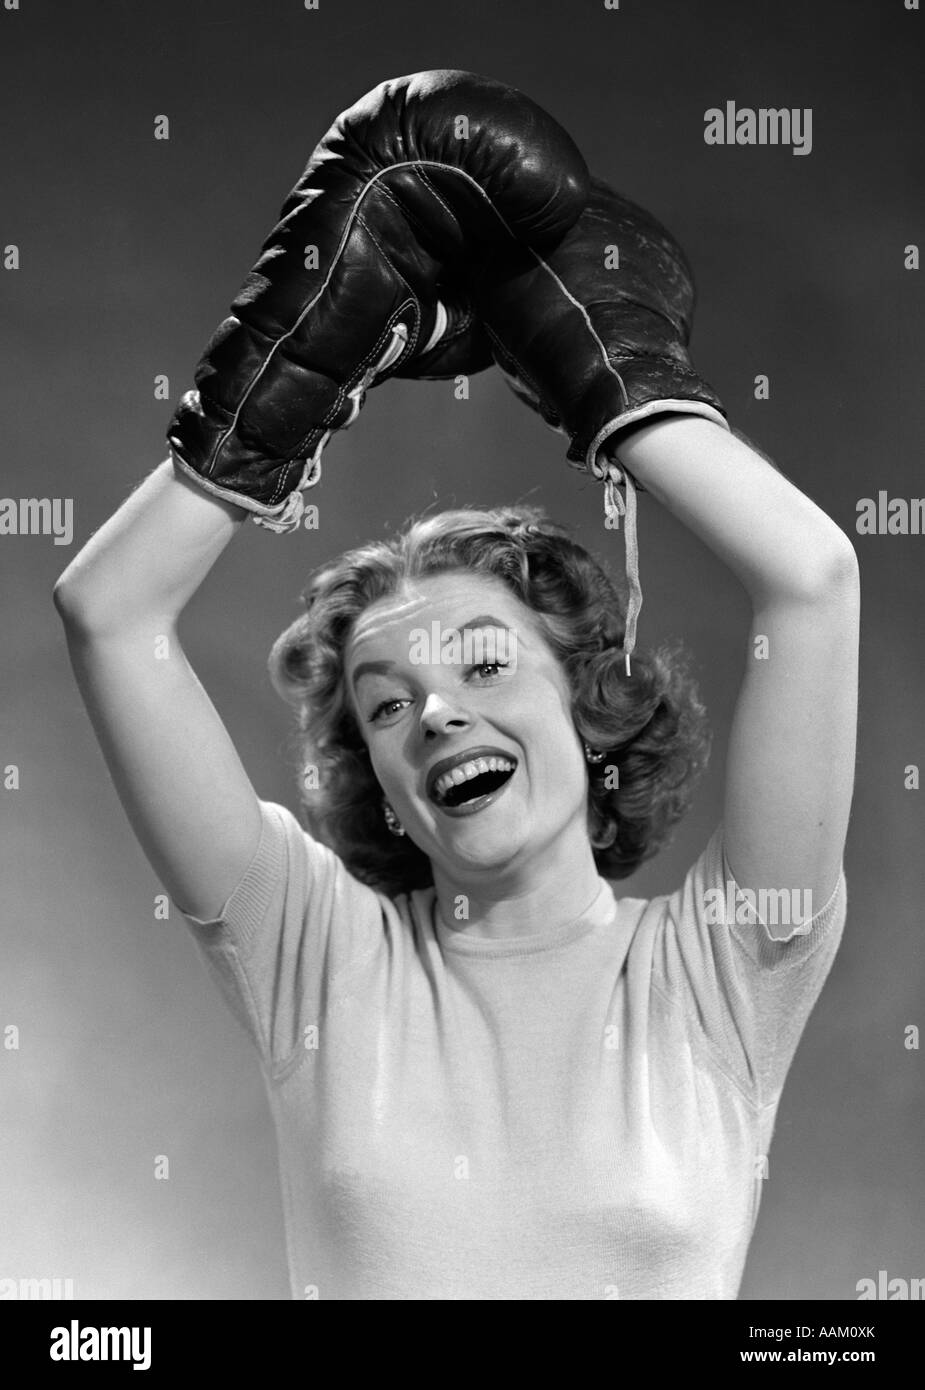 1950s PORTRAIT OF WOMAN WEARING BOXING GLOVES IN WINNING POSE ARMS RAISED OVERHEAD LOOKING AT CAMERA - Stock Image